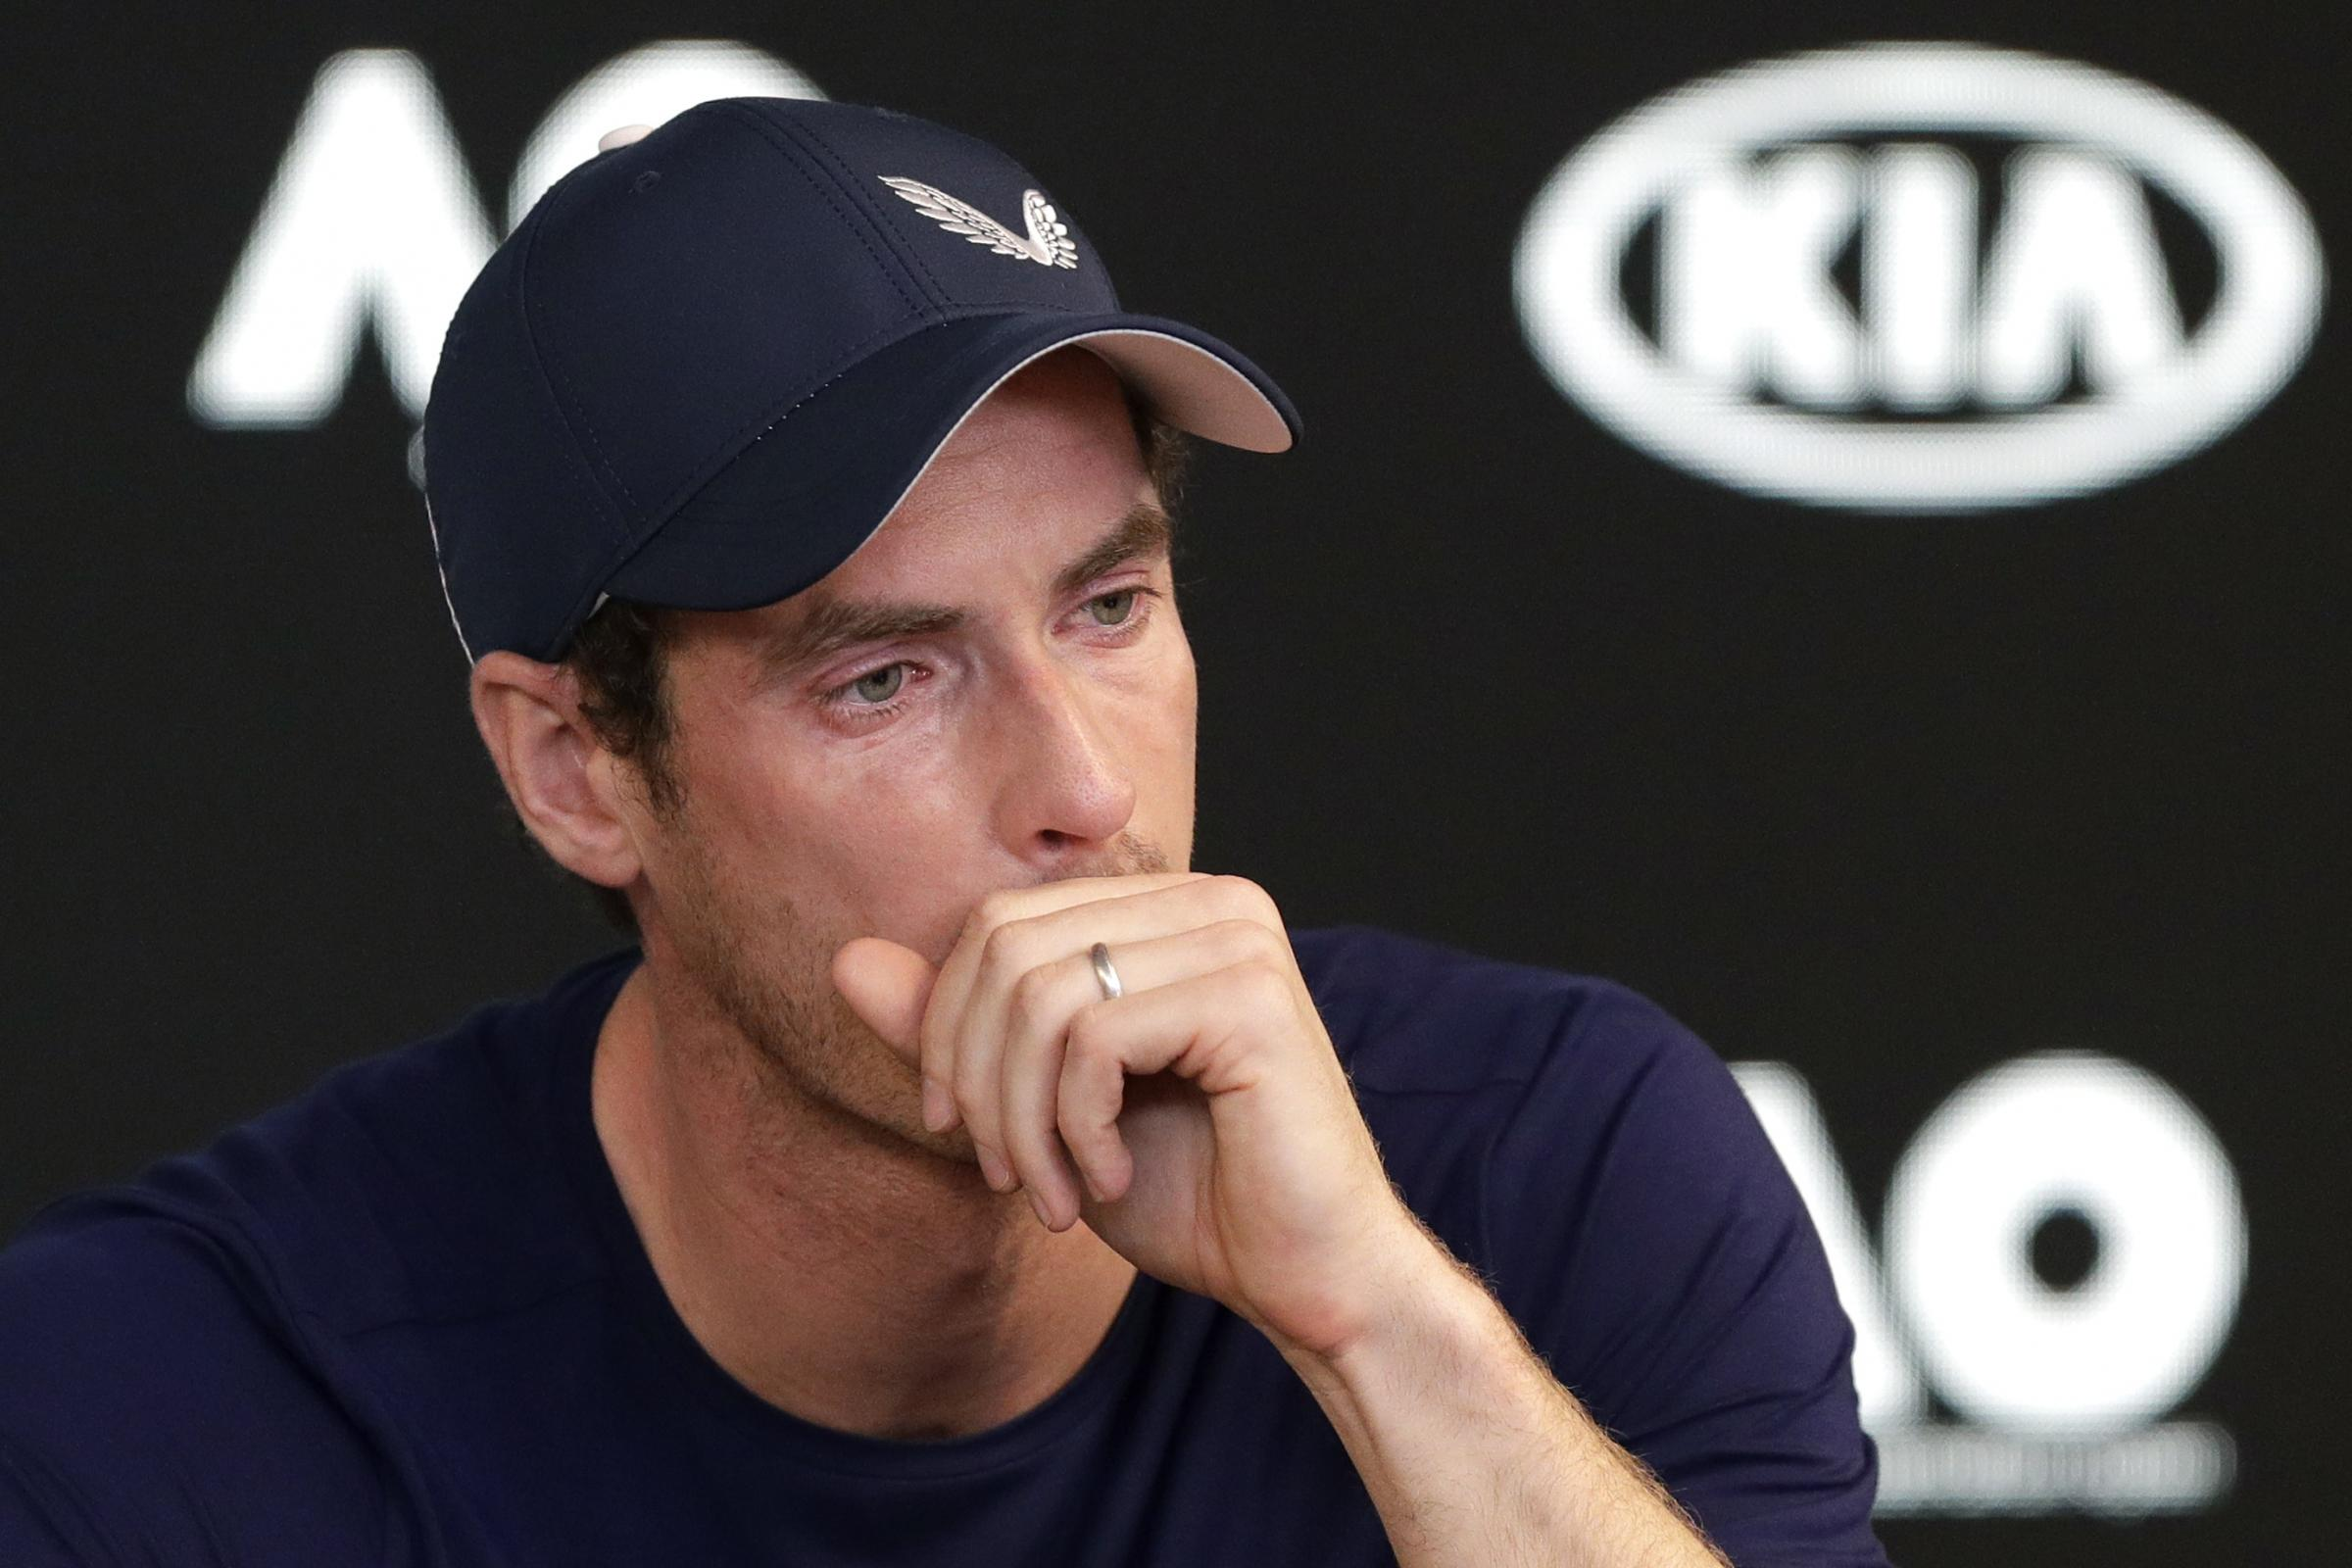 826c7306ad6 Emotional Andy Murray says Australian Open could be his last tournament